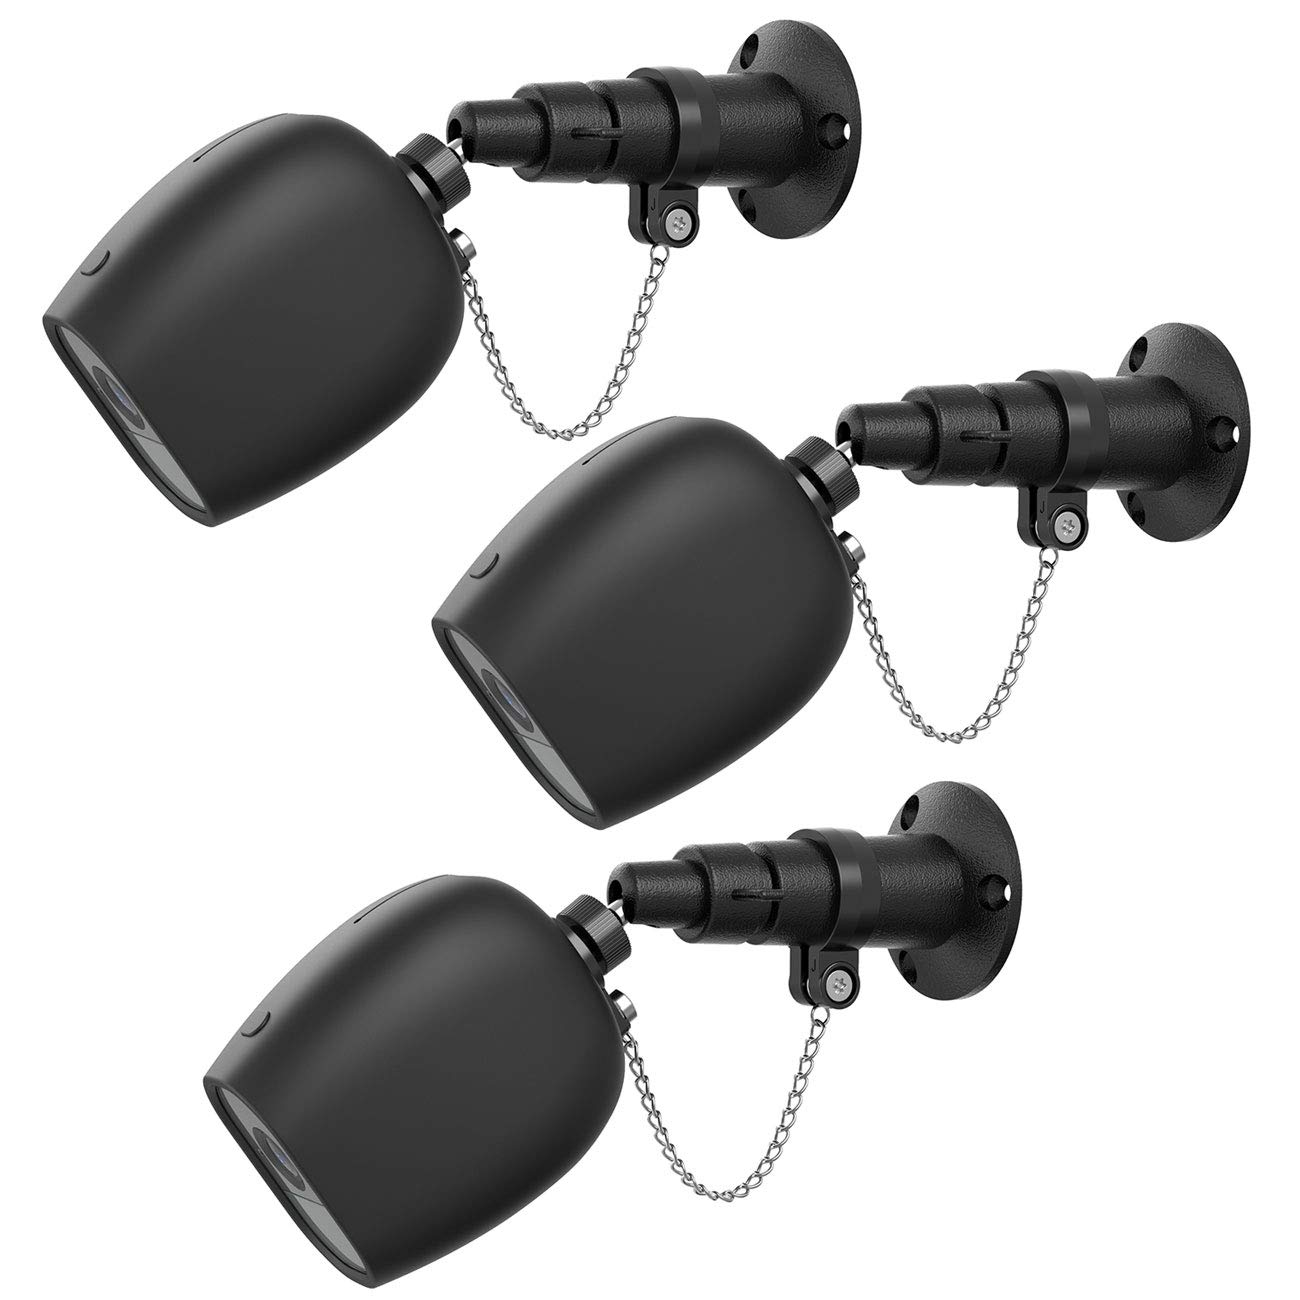 BECROWMUS 3pack Anti-Theft Security Chain Compatible with Arlo Pro Arlo Pro 2 Weatherproof Wall Mount Outdoor Bracket Skins Protective Case Cover for Wireless CCTV HD Security Camera Black by BECROWMUS